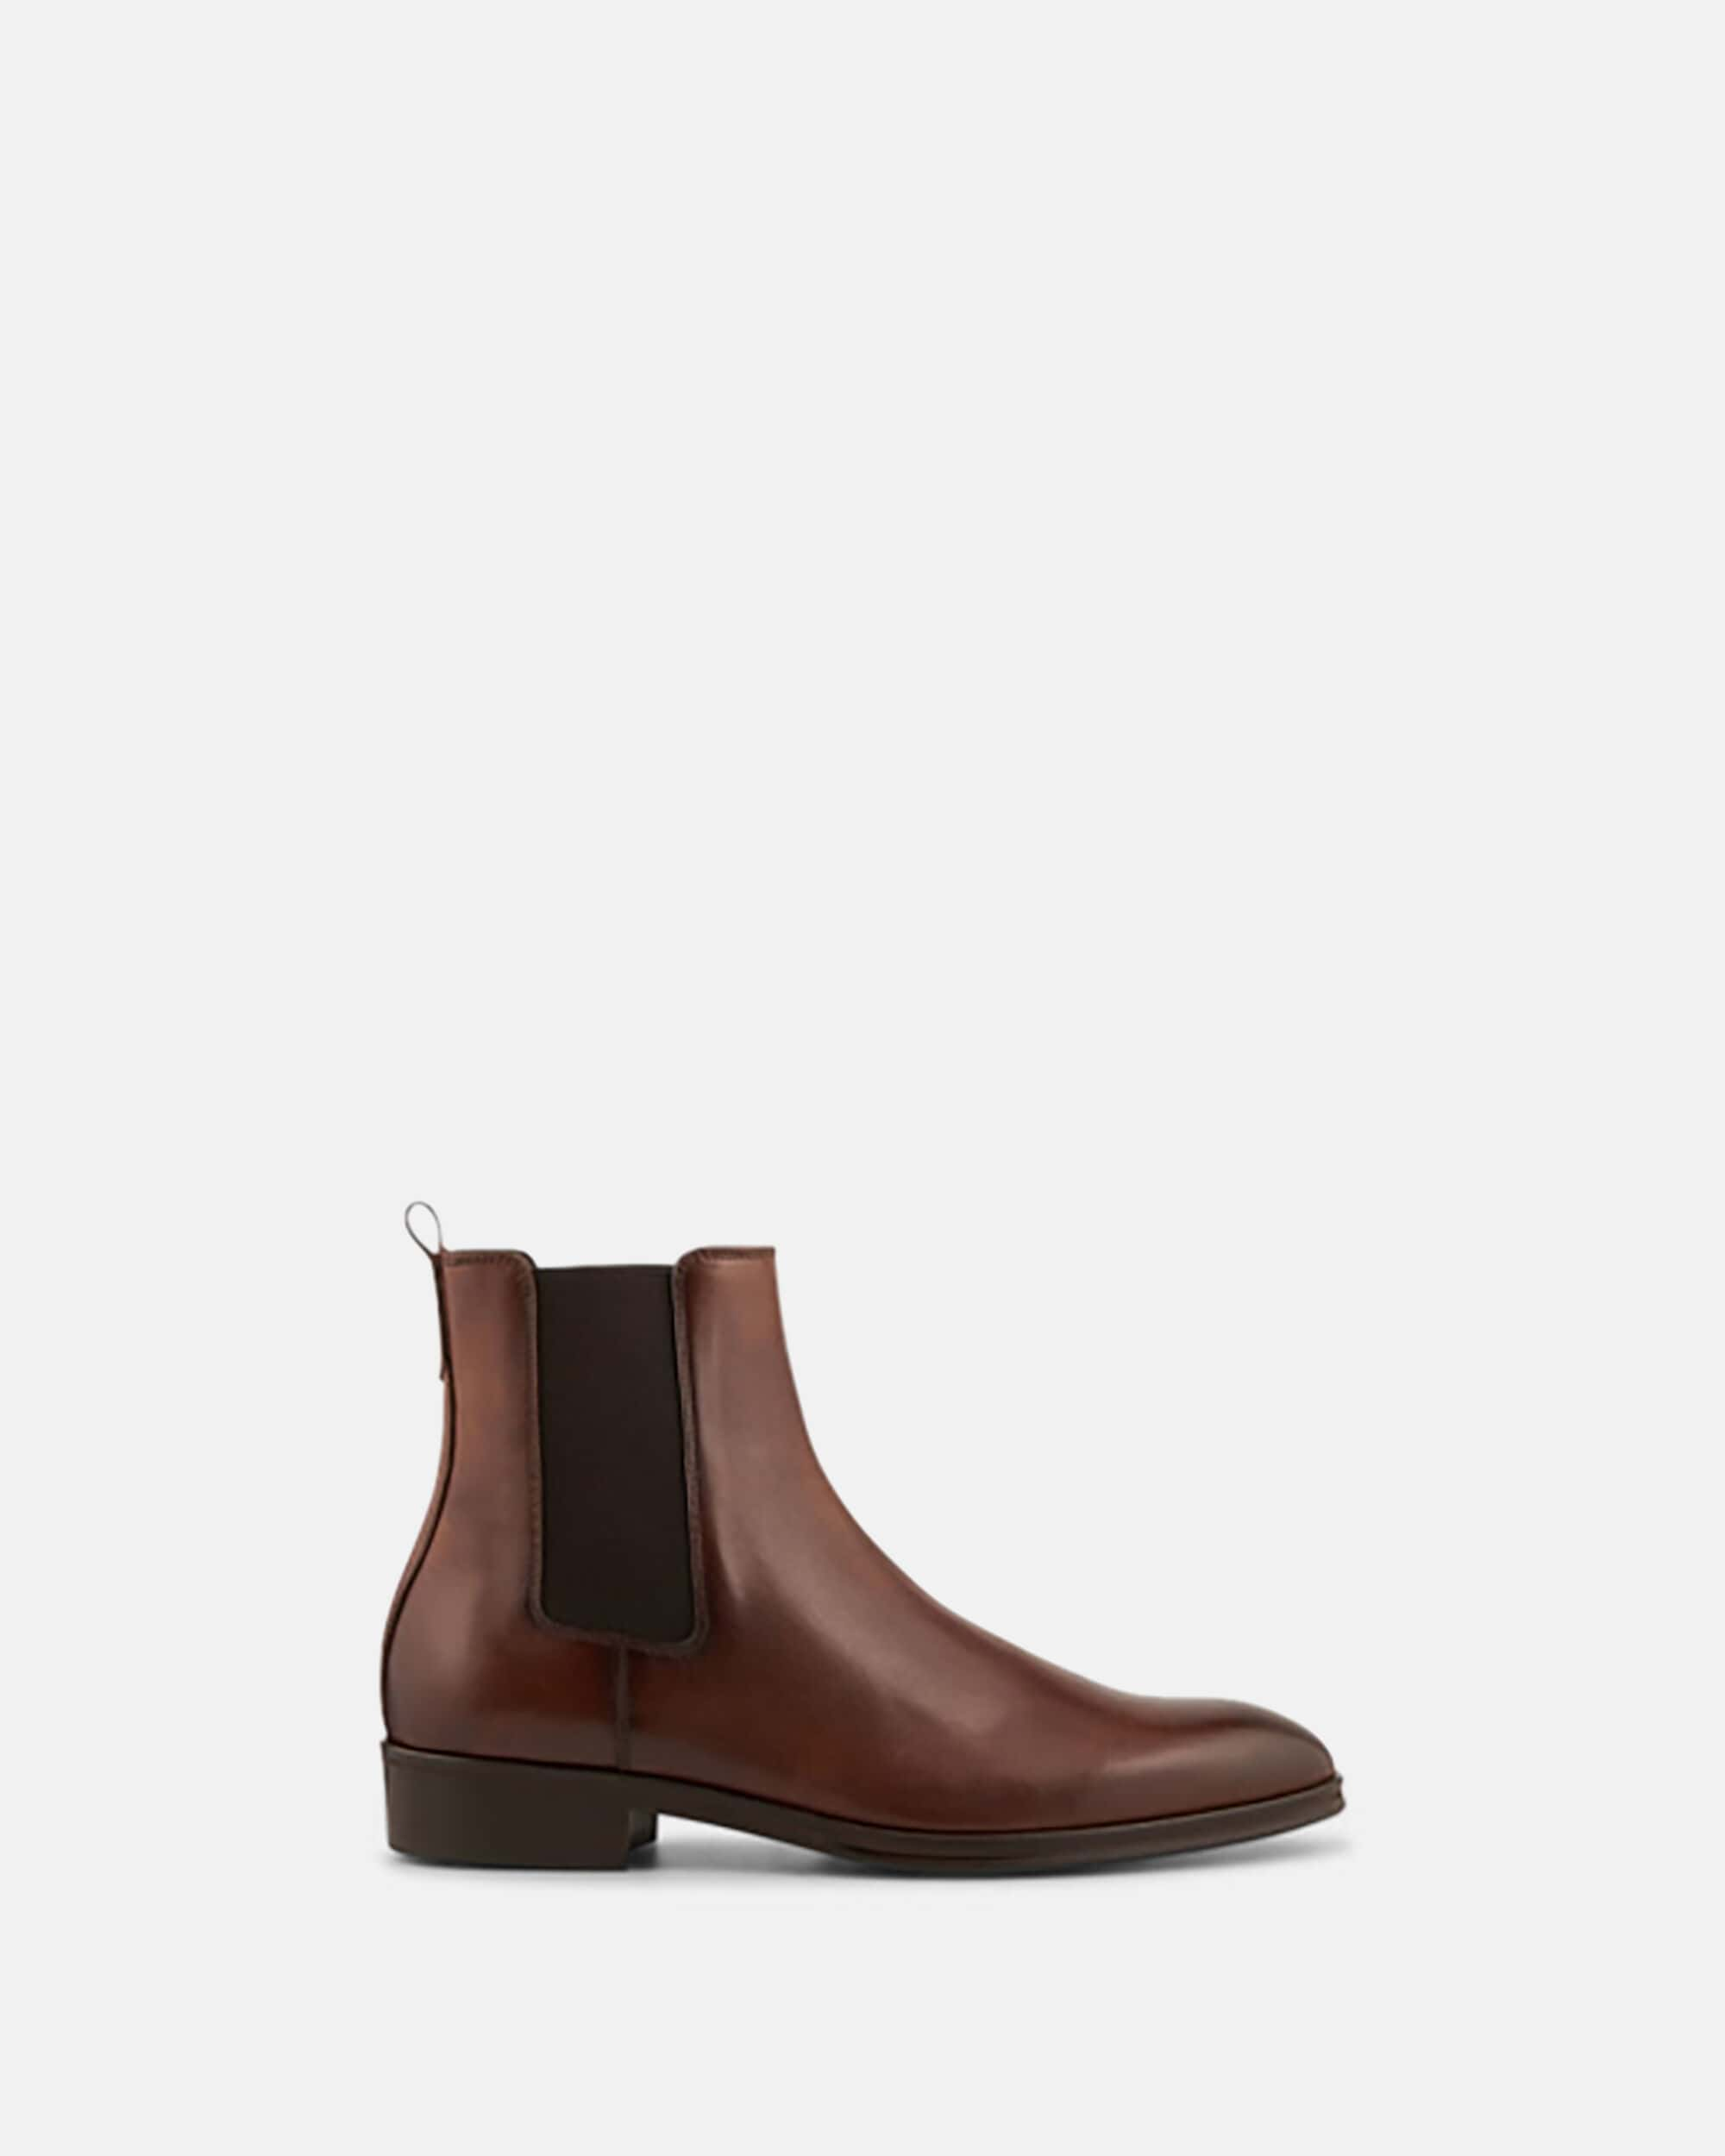 Hommebottines Boots Hommebottines Boots Chelsea Minelli Chelsea W29HIYED